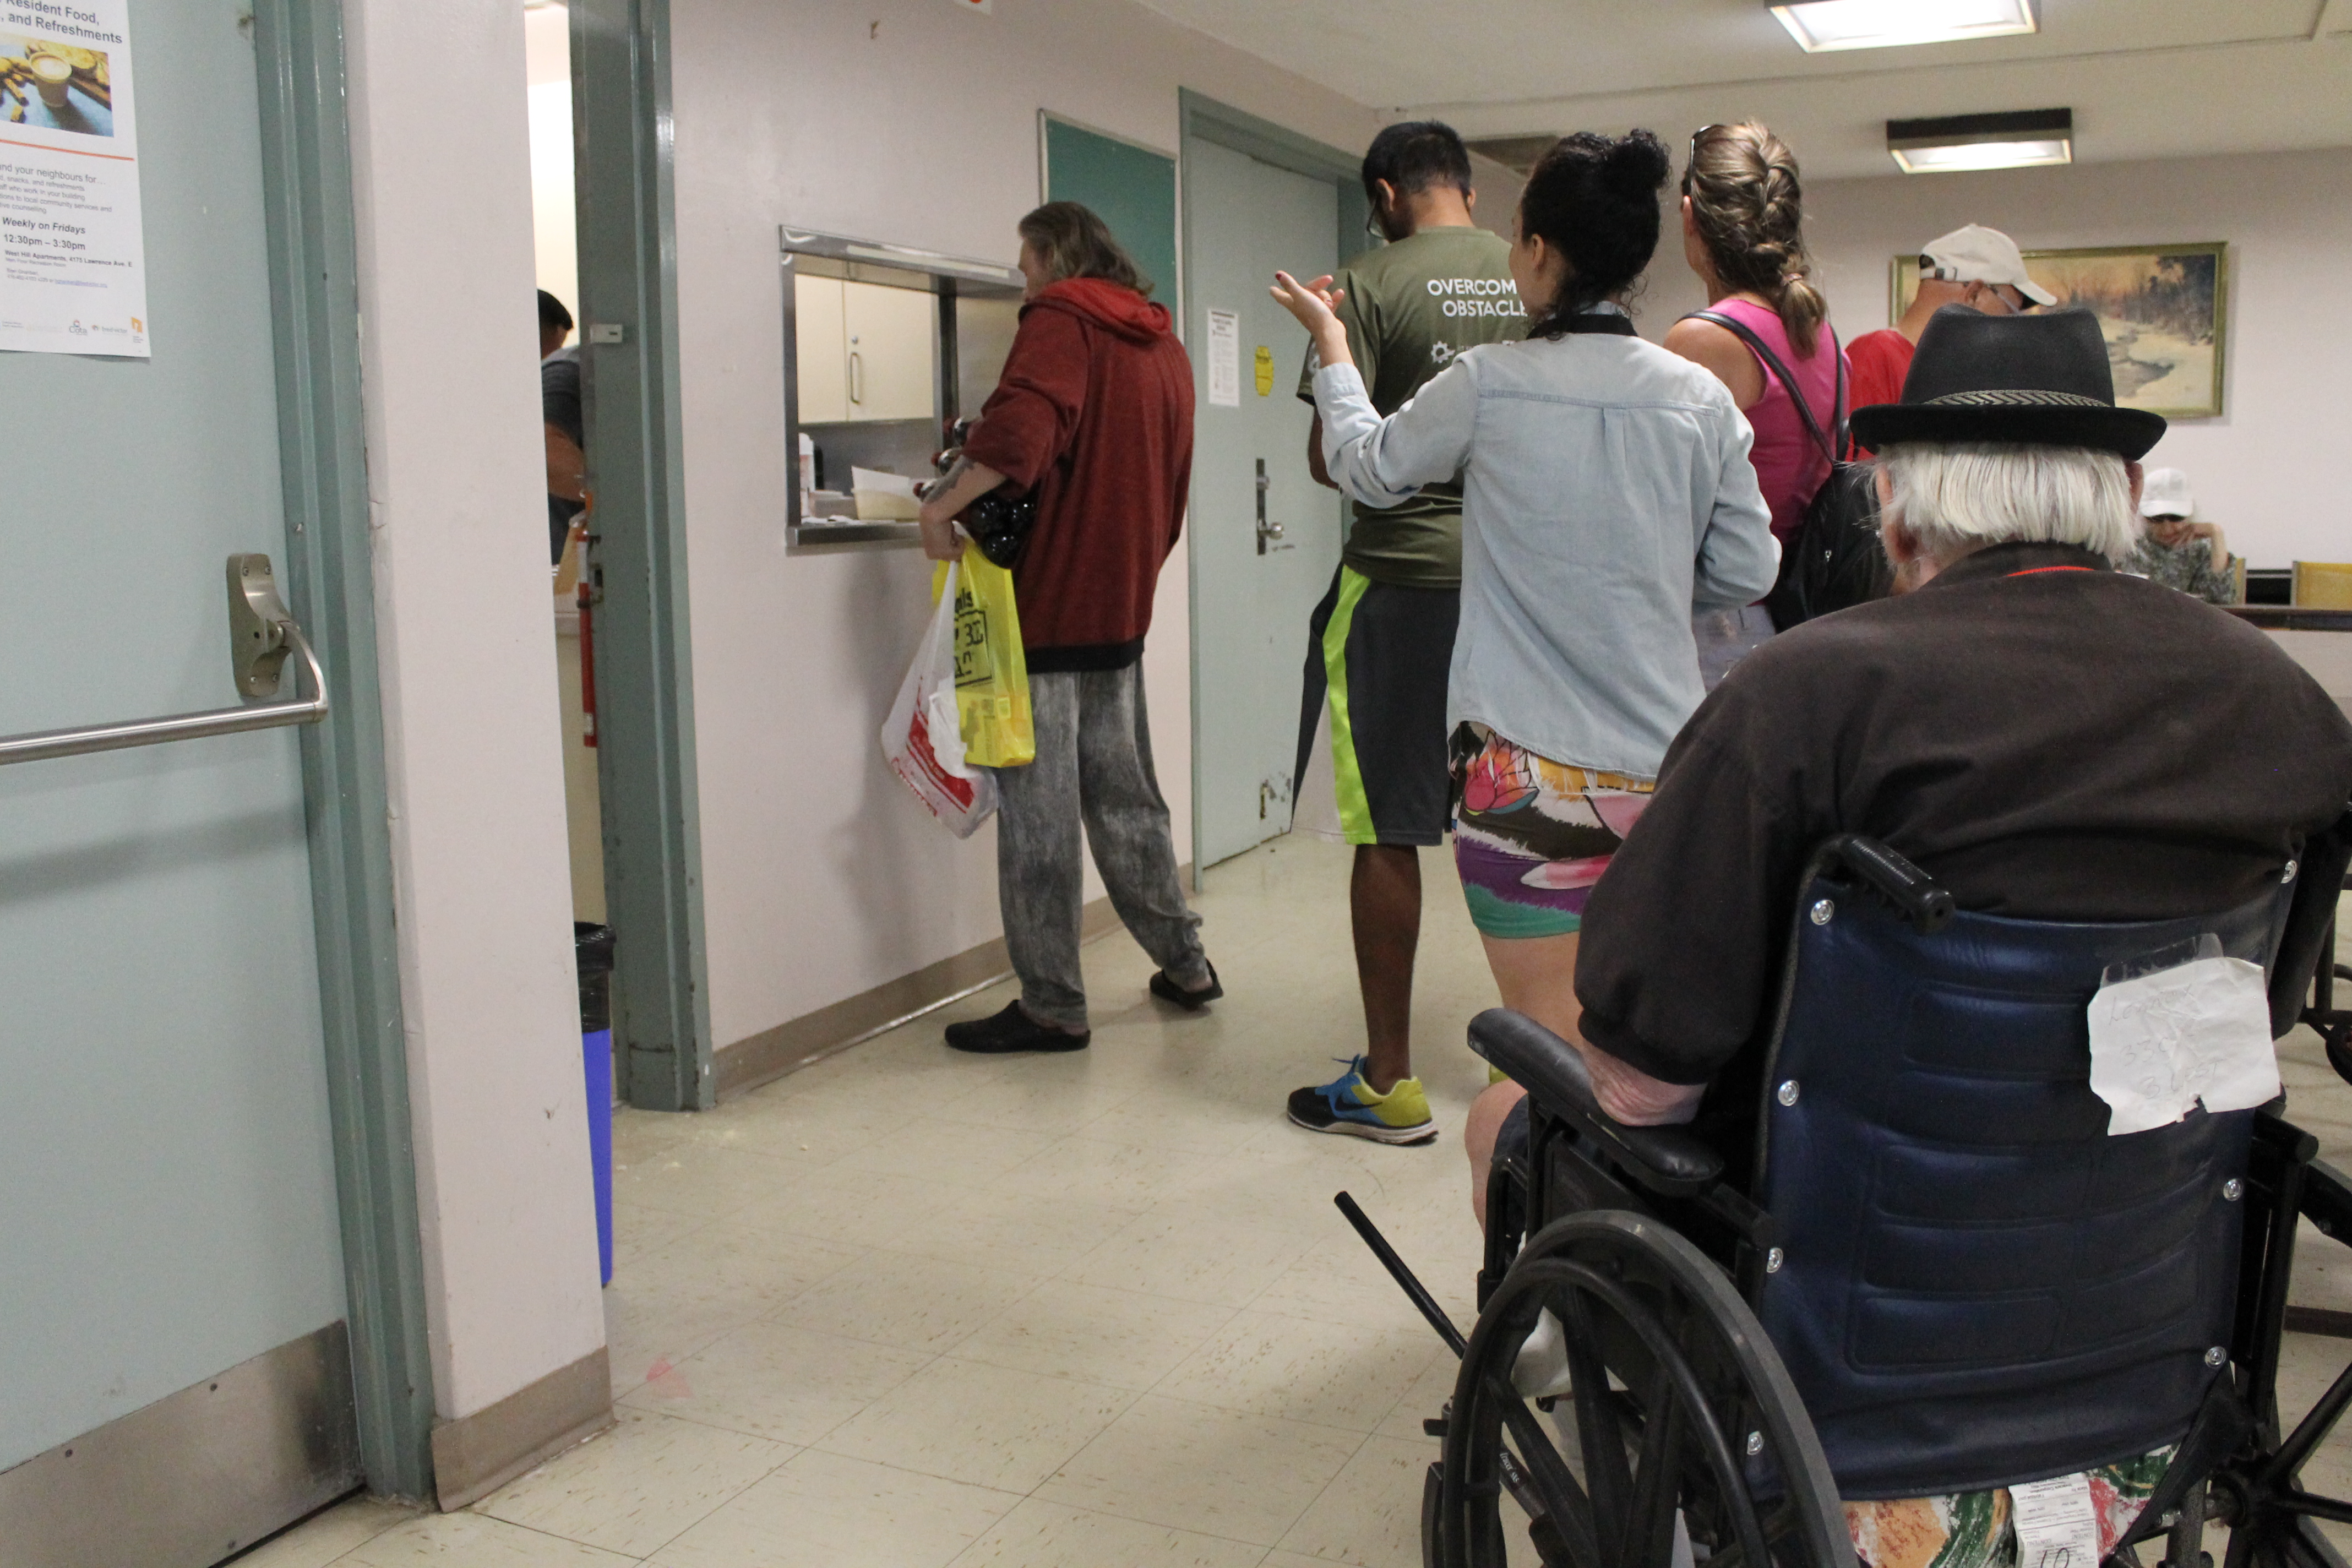 Residents line up in the building's recreation room for a tasty lunch.